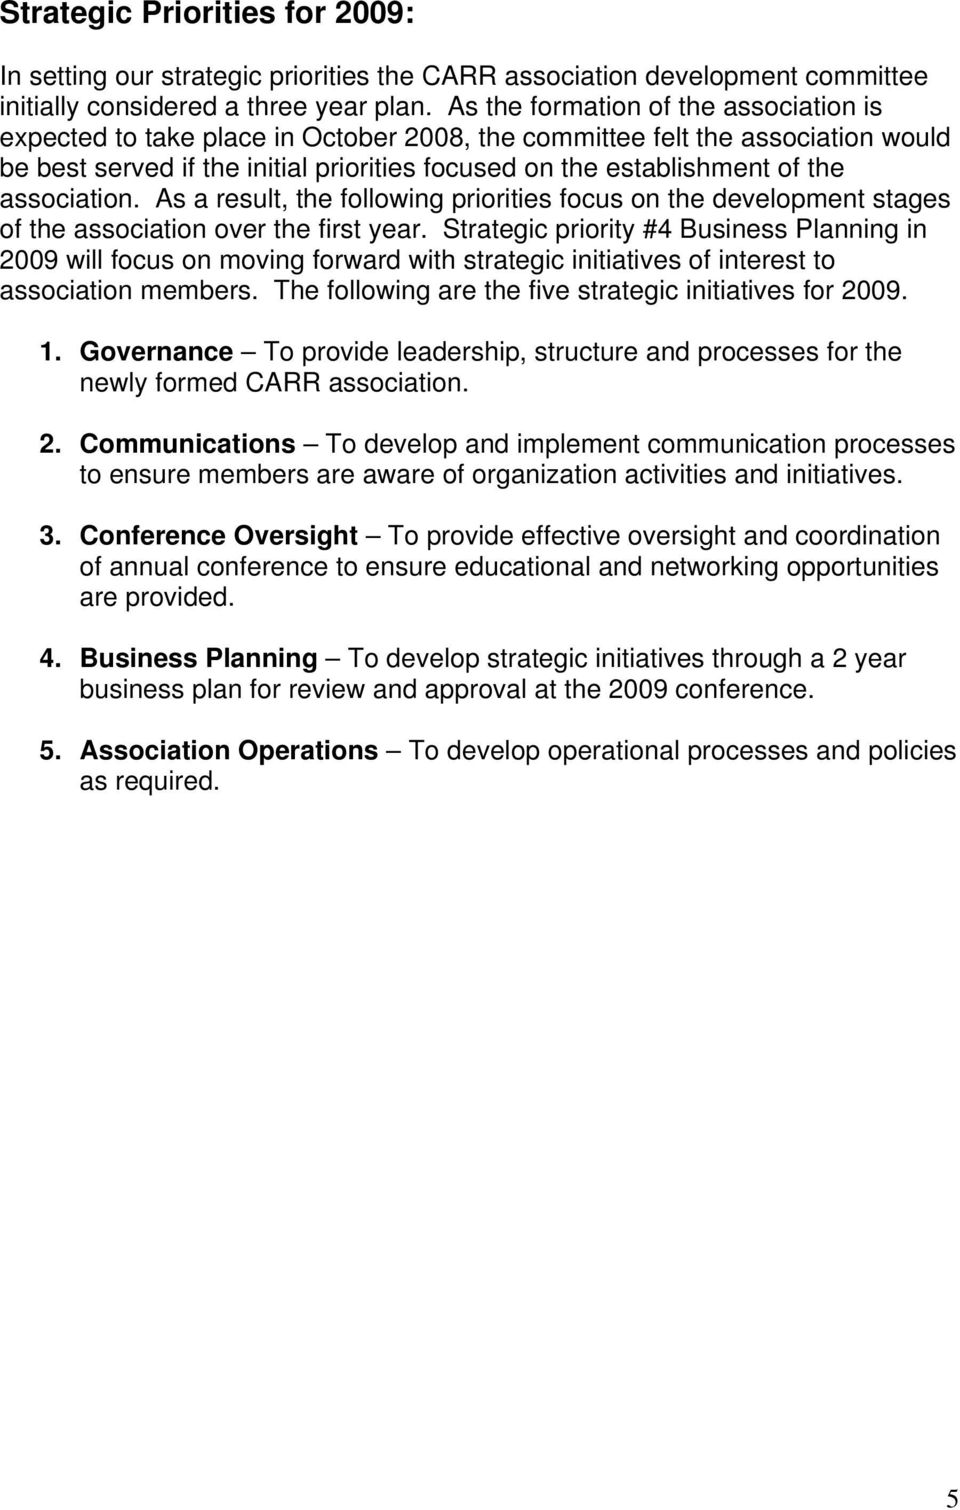 association. As a result, the following priorities focus on the development stages of the association over the first year.